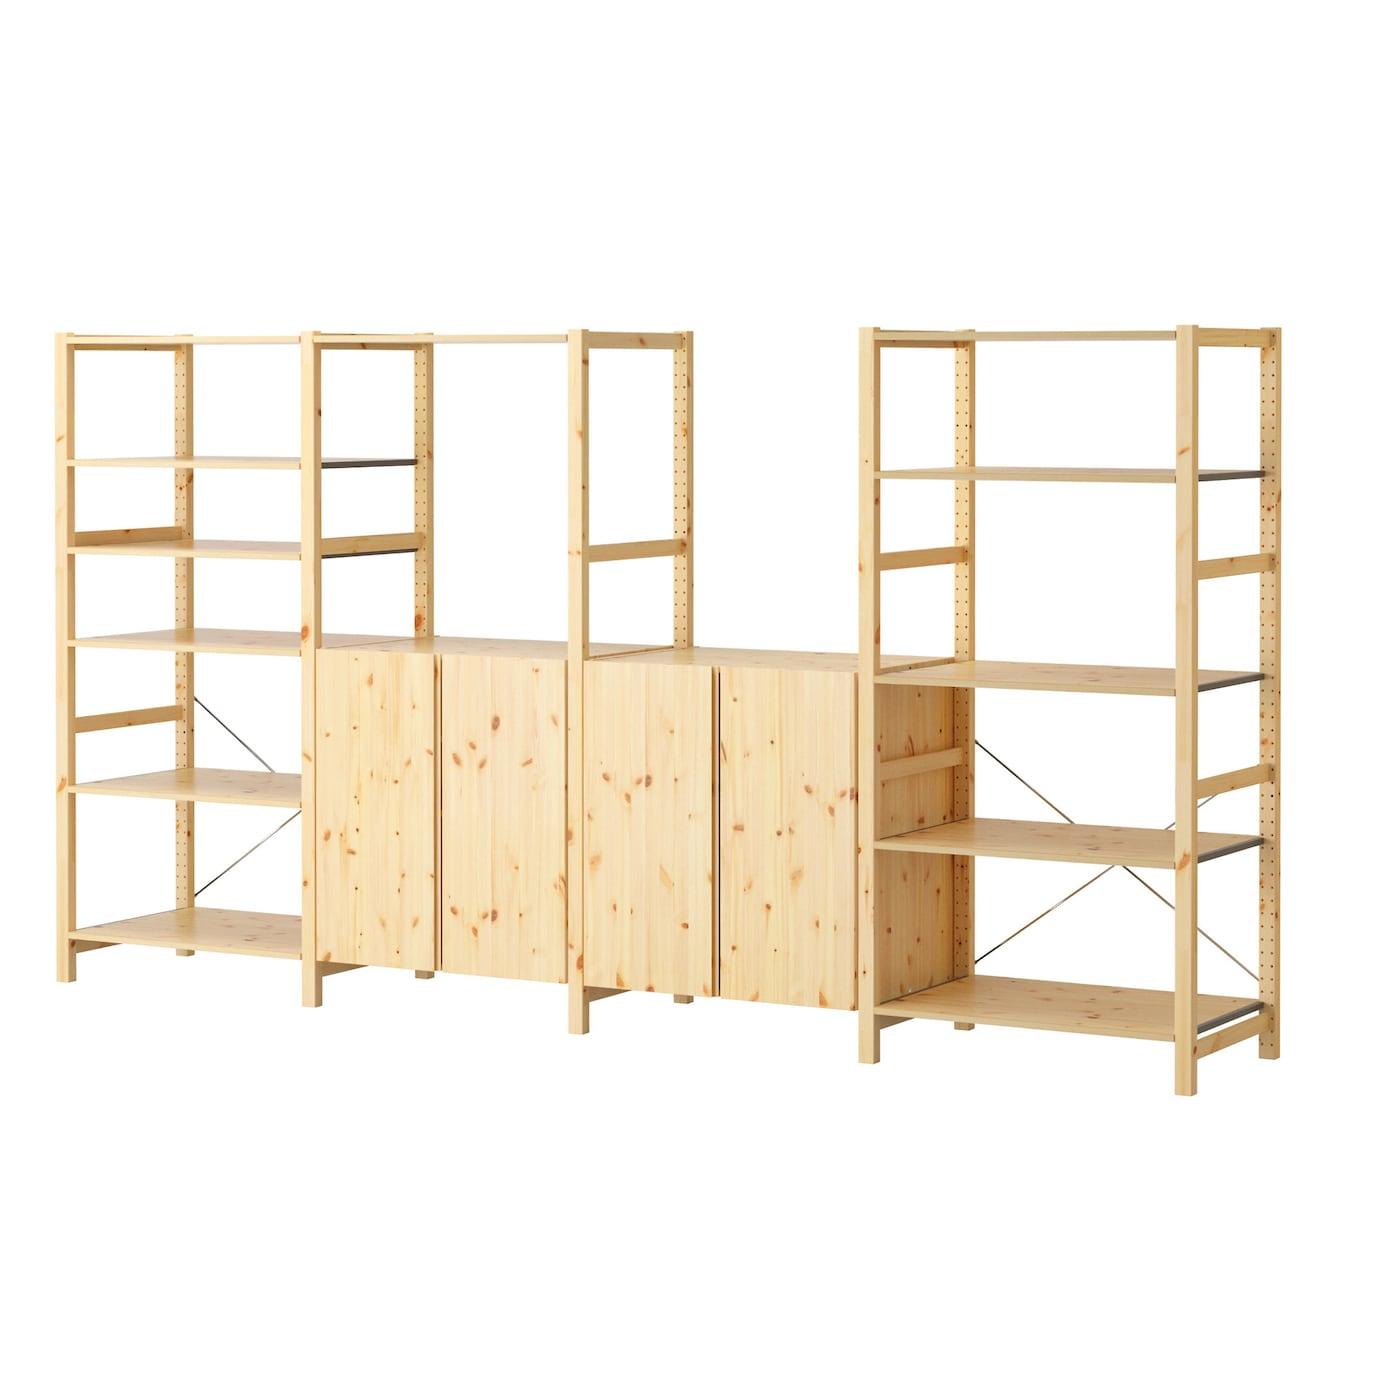 Ivar 4 sections shelves pine 344x50x179 cm ikea for Ladenblok ivar ikea